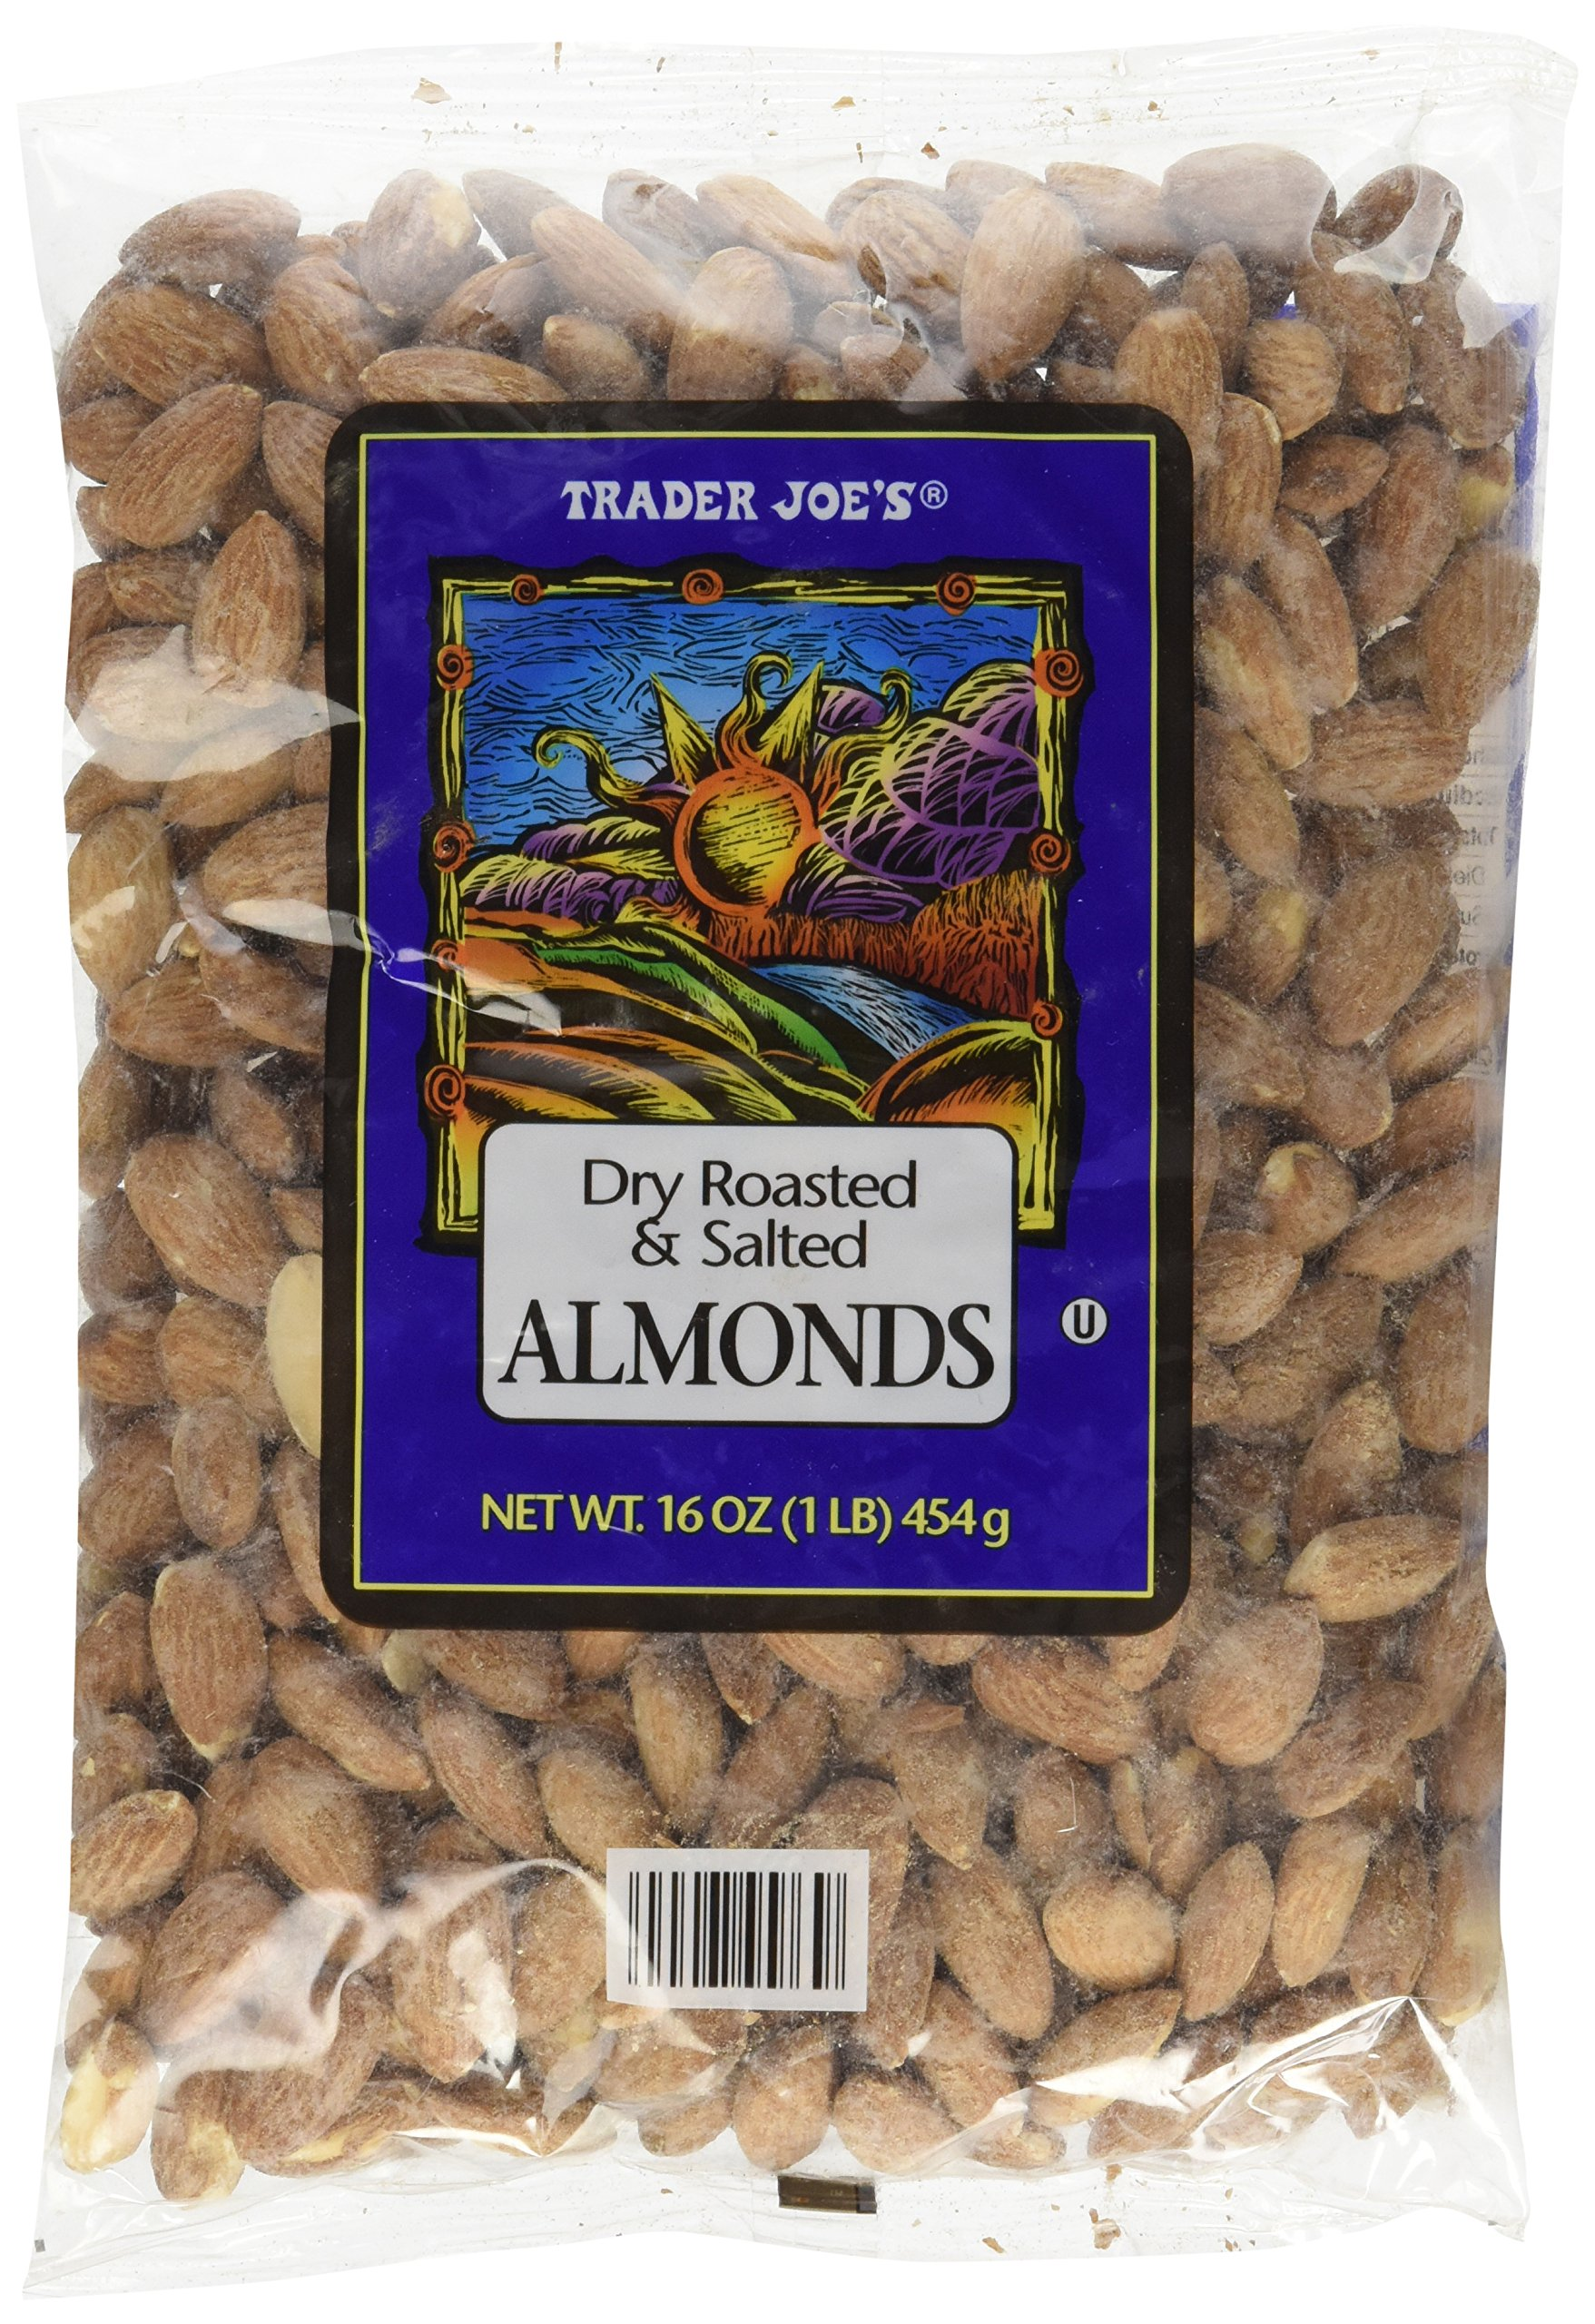 Trader Joe's Dry Roasted & Salted Almonds